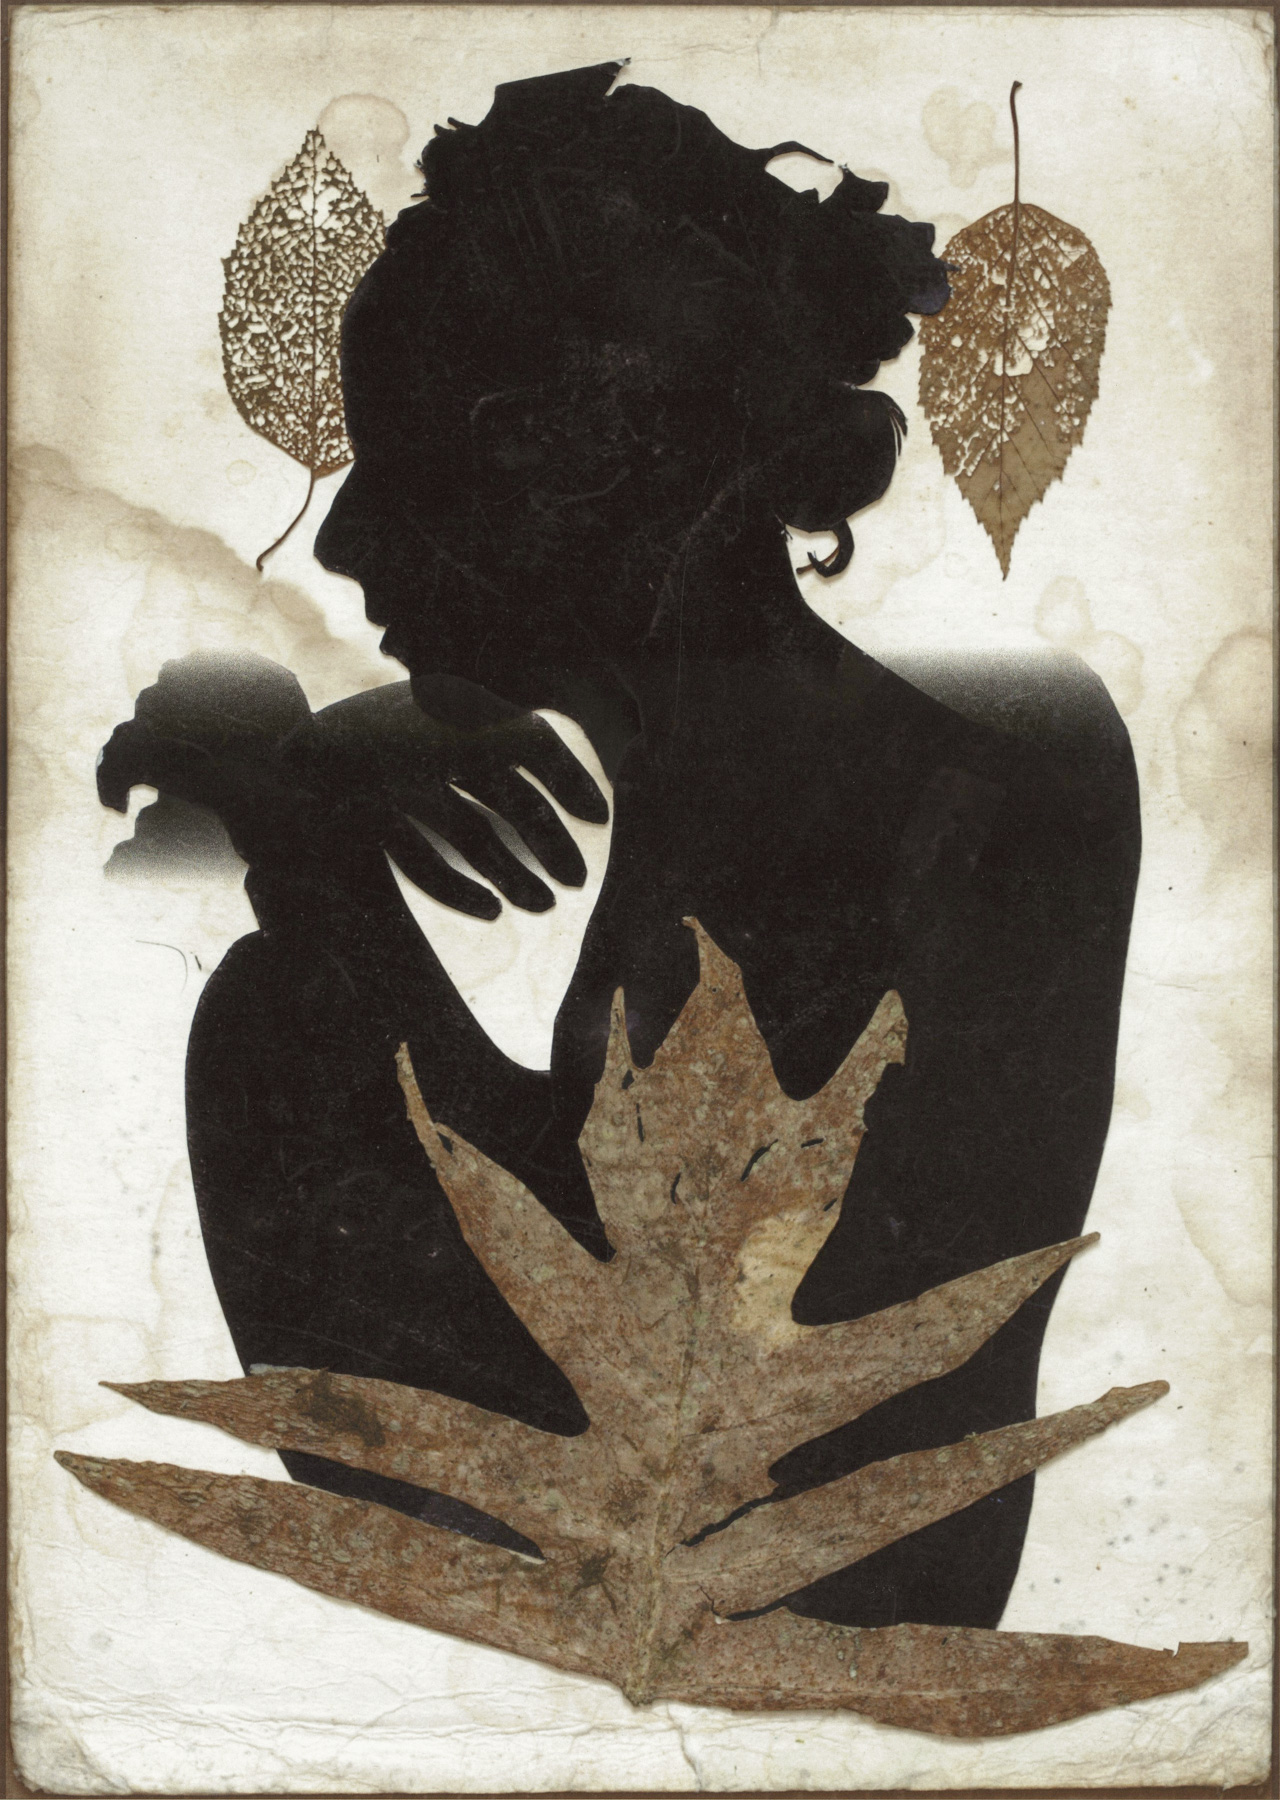 Edith in Panama with Three Leaves , 2015, digital inkjet print.© Emmet and Edith Gowin; courtesy Pace/MacGill Gallery, New York